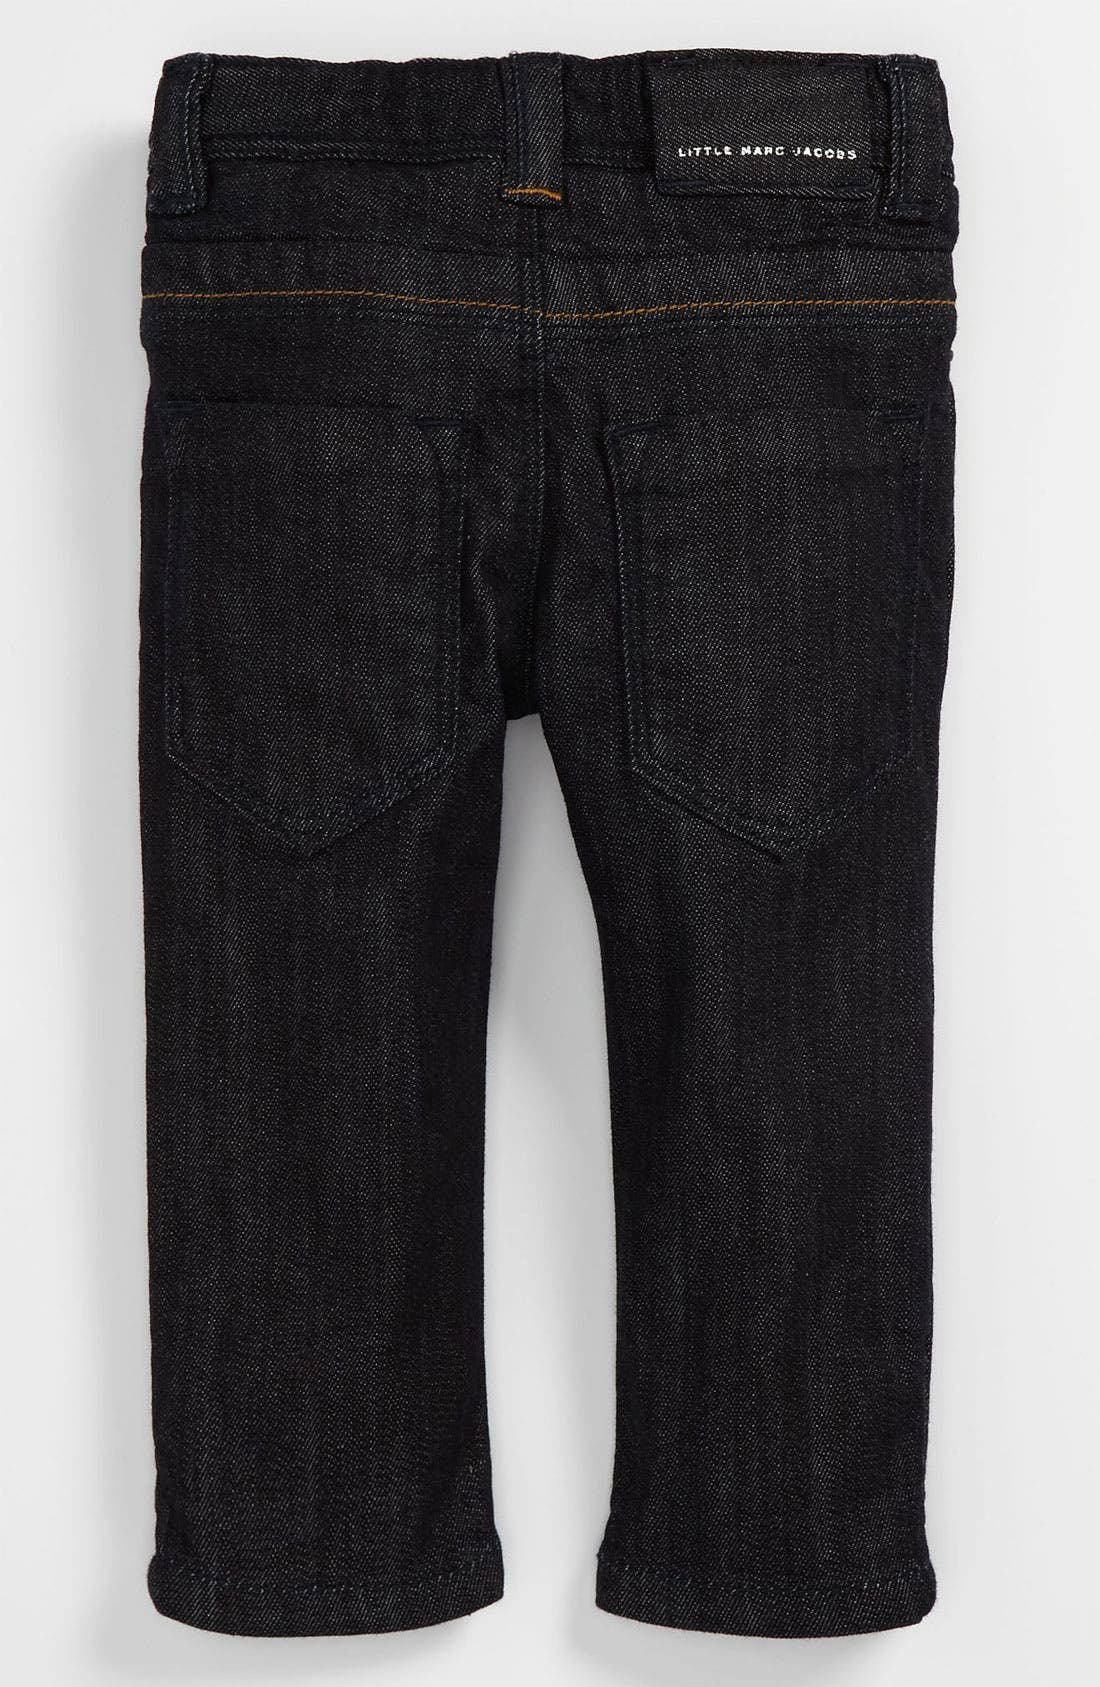 Alternate Image 1 Selected - LITTLE MARC JACOBS Denim Pants (Baby)